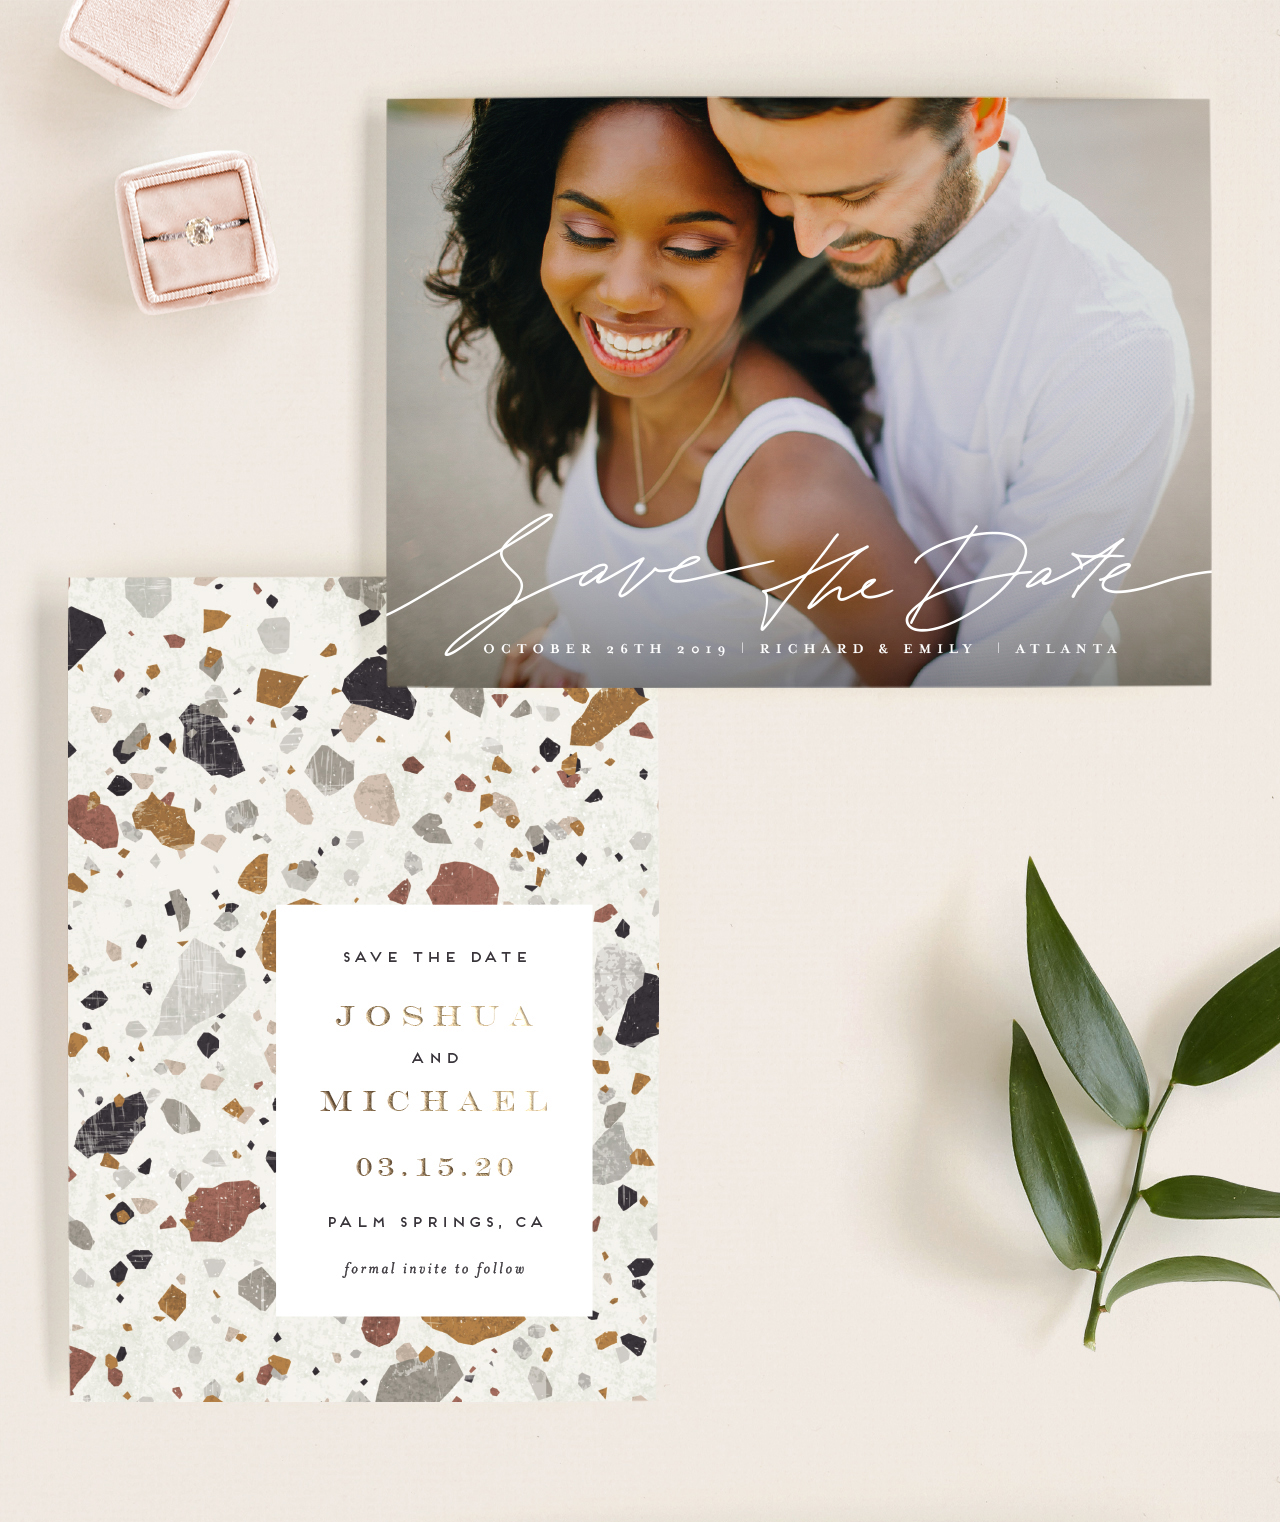 www.santabarbarawedding.com | new save the date assortment by minted.com